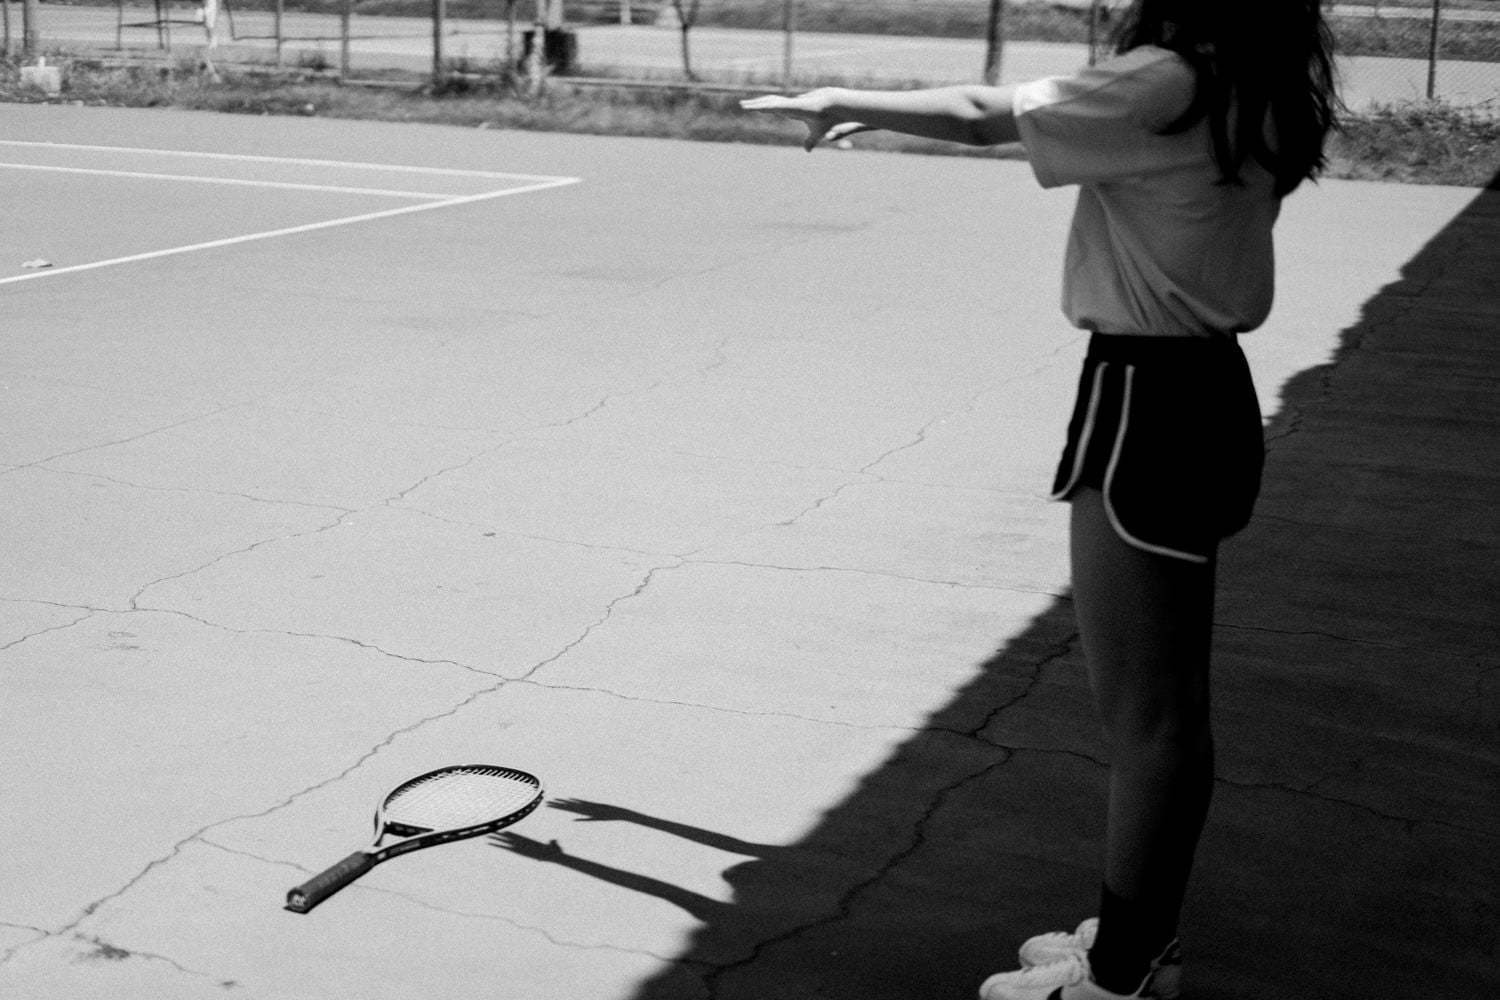 The shadow play of Angel reaching the racket in Black and White